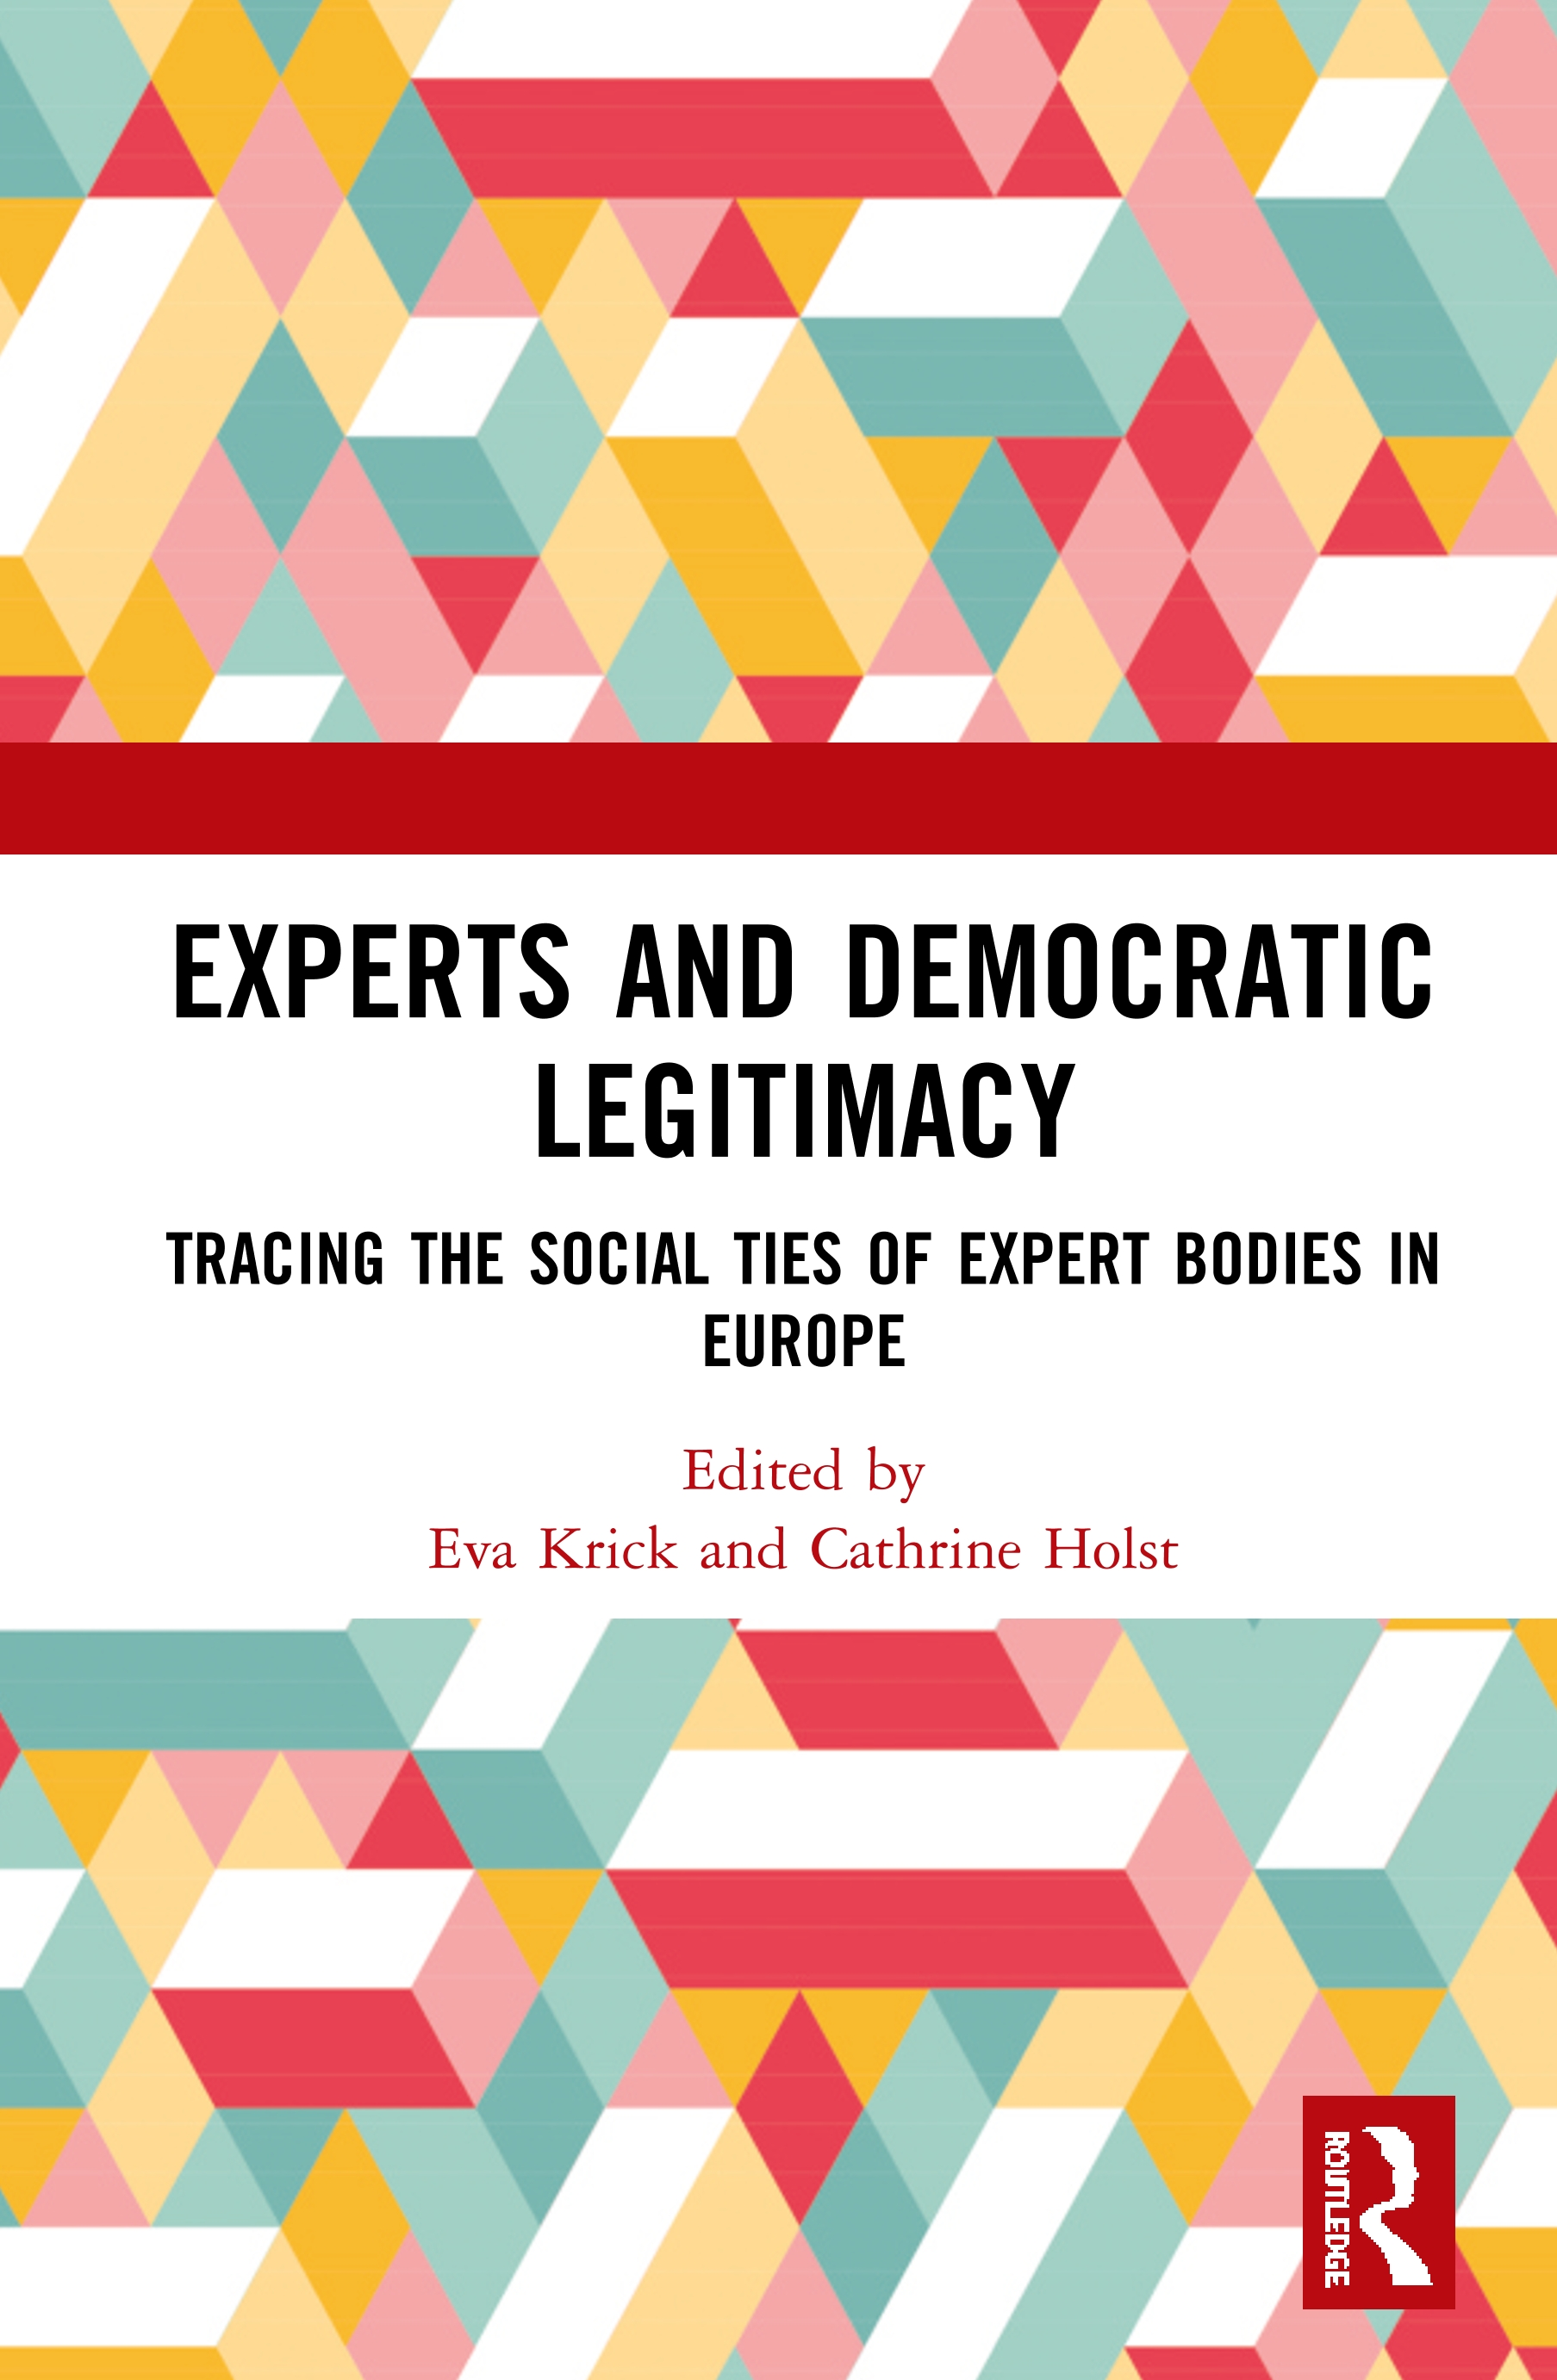 Experts and Democratic Legitimacy: Tracing the social ties of expert bodies in Europe book cover